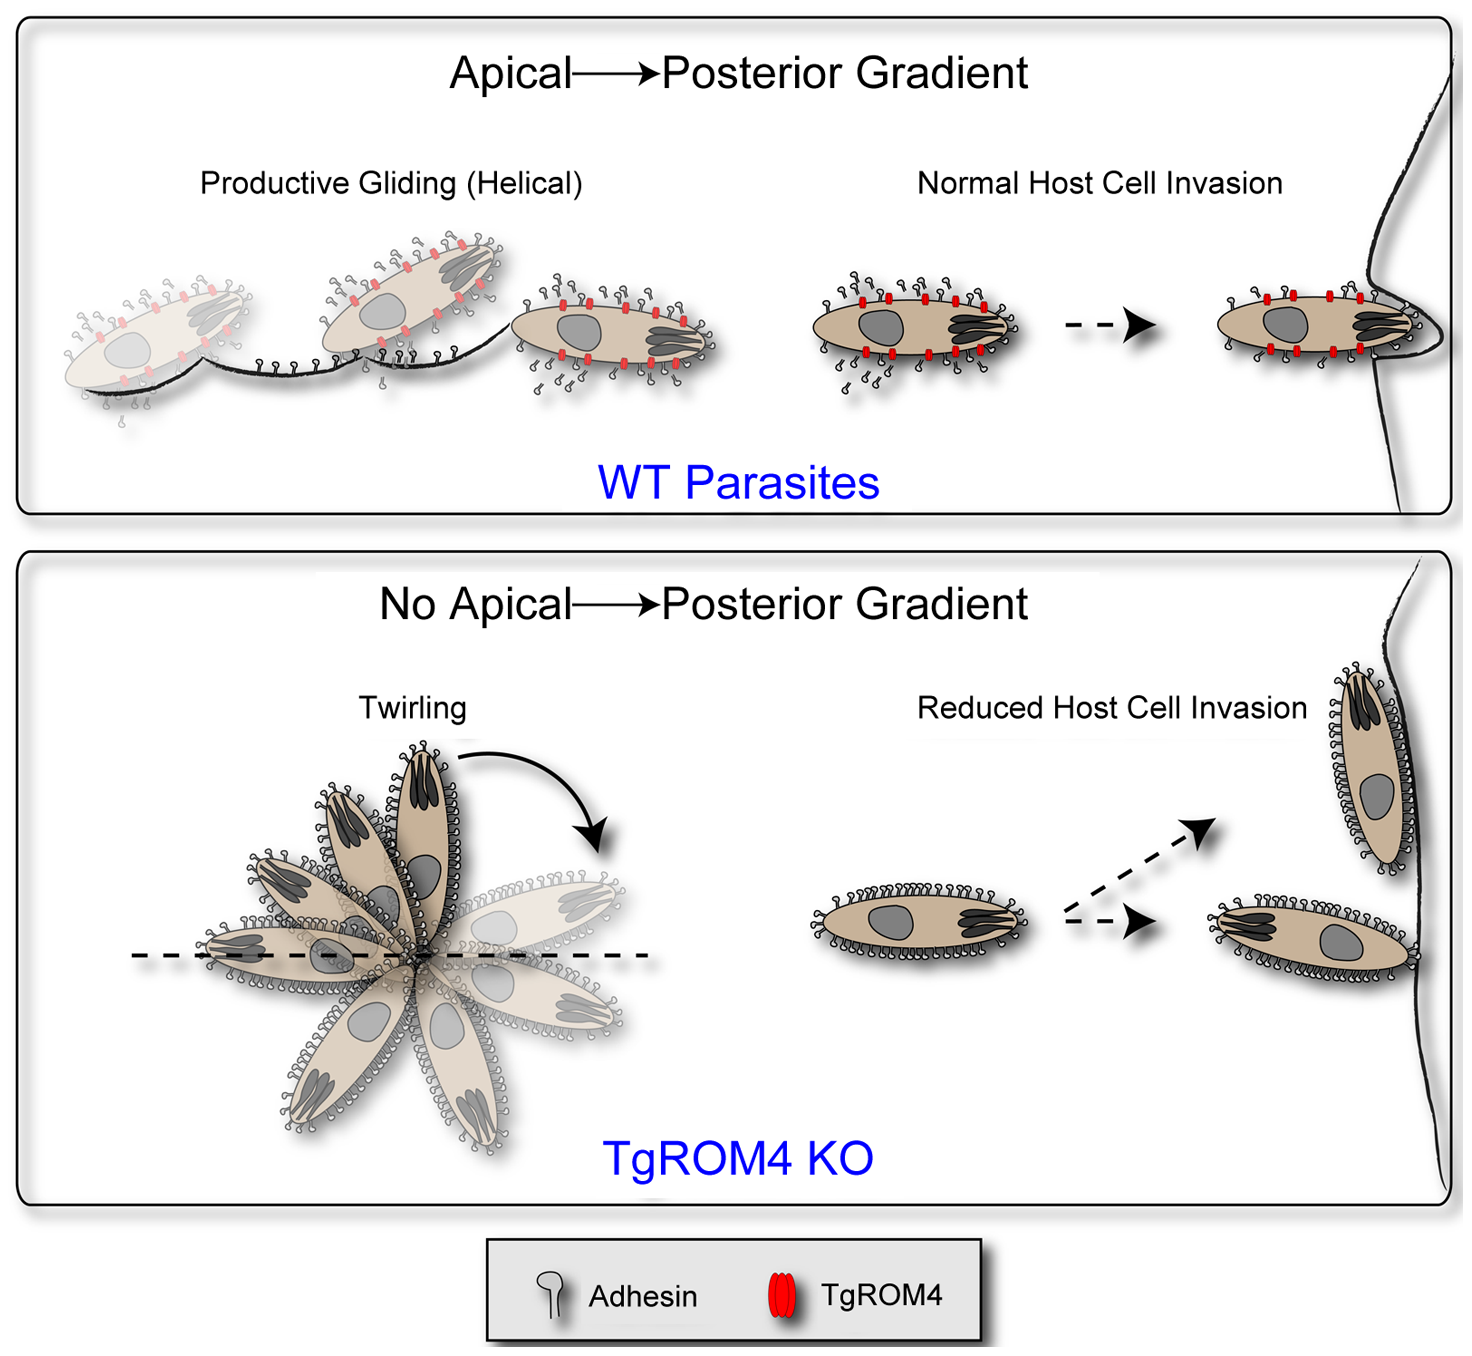 Model for the role of TgROM4 in parasite invasion.